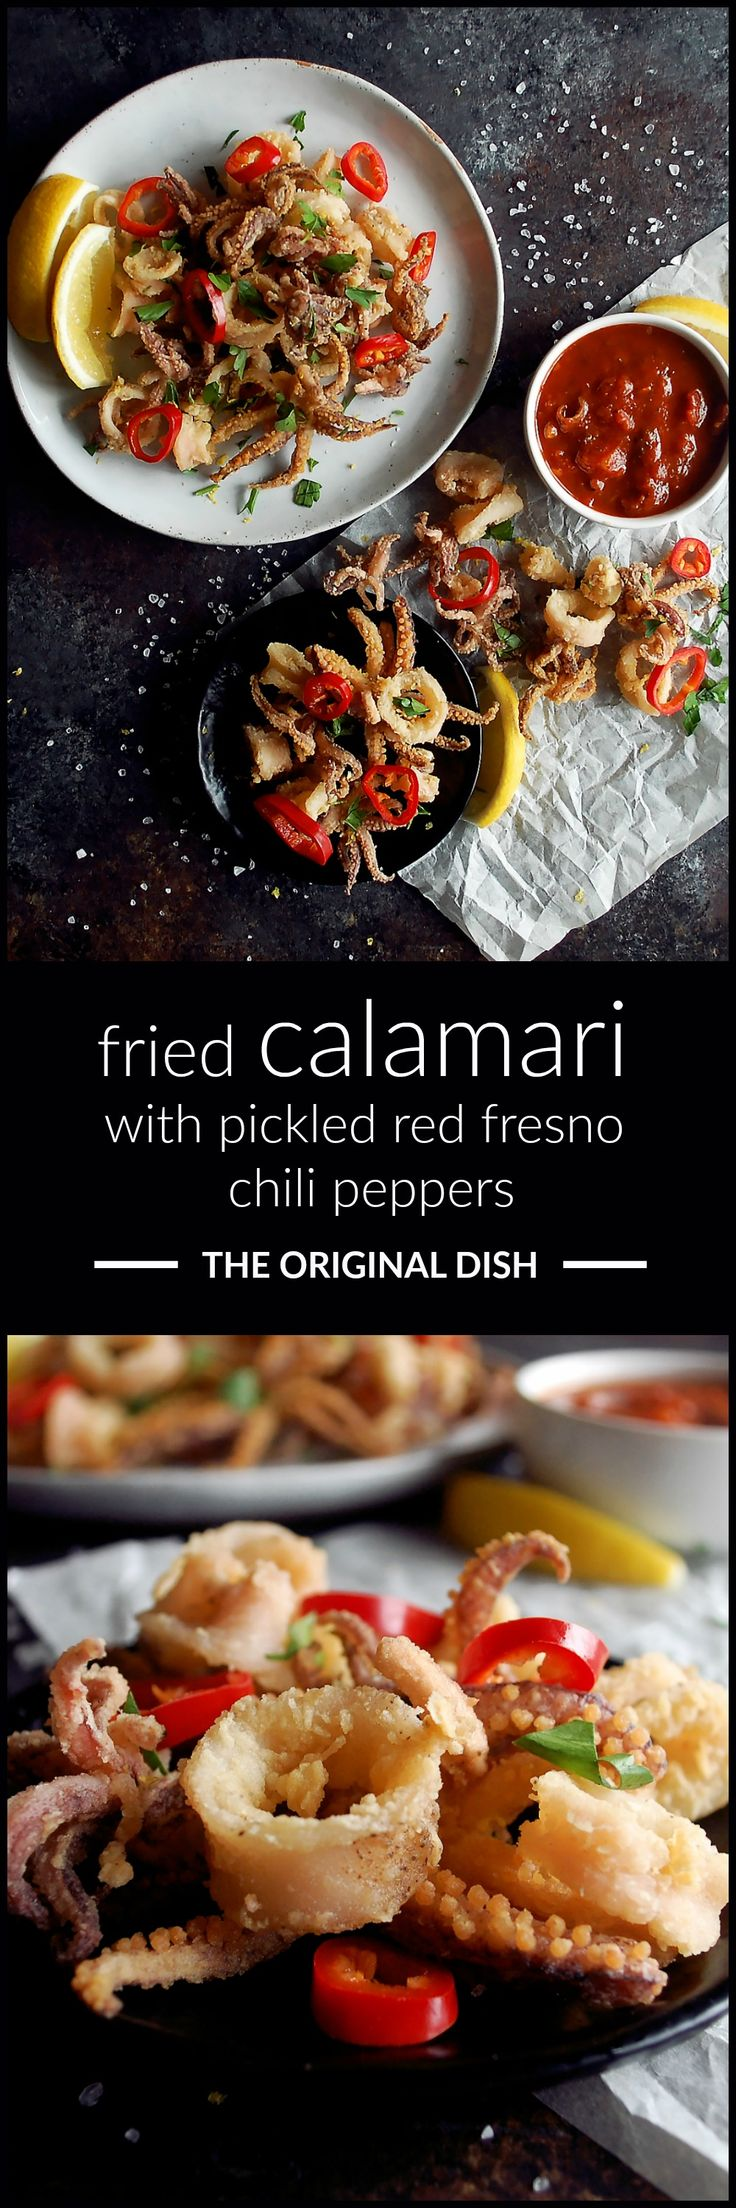 the easiest recipe for crispy fried calamari topped with homemade pickled red fresno chili peppers & served with marinara sauce...such a crowd-pleasing appetizer - www.theoriginaldish.com